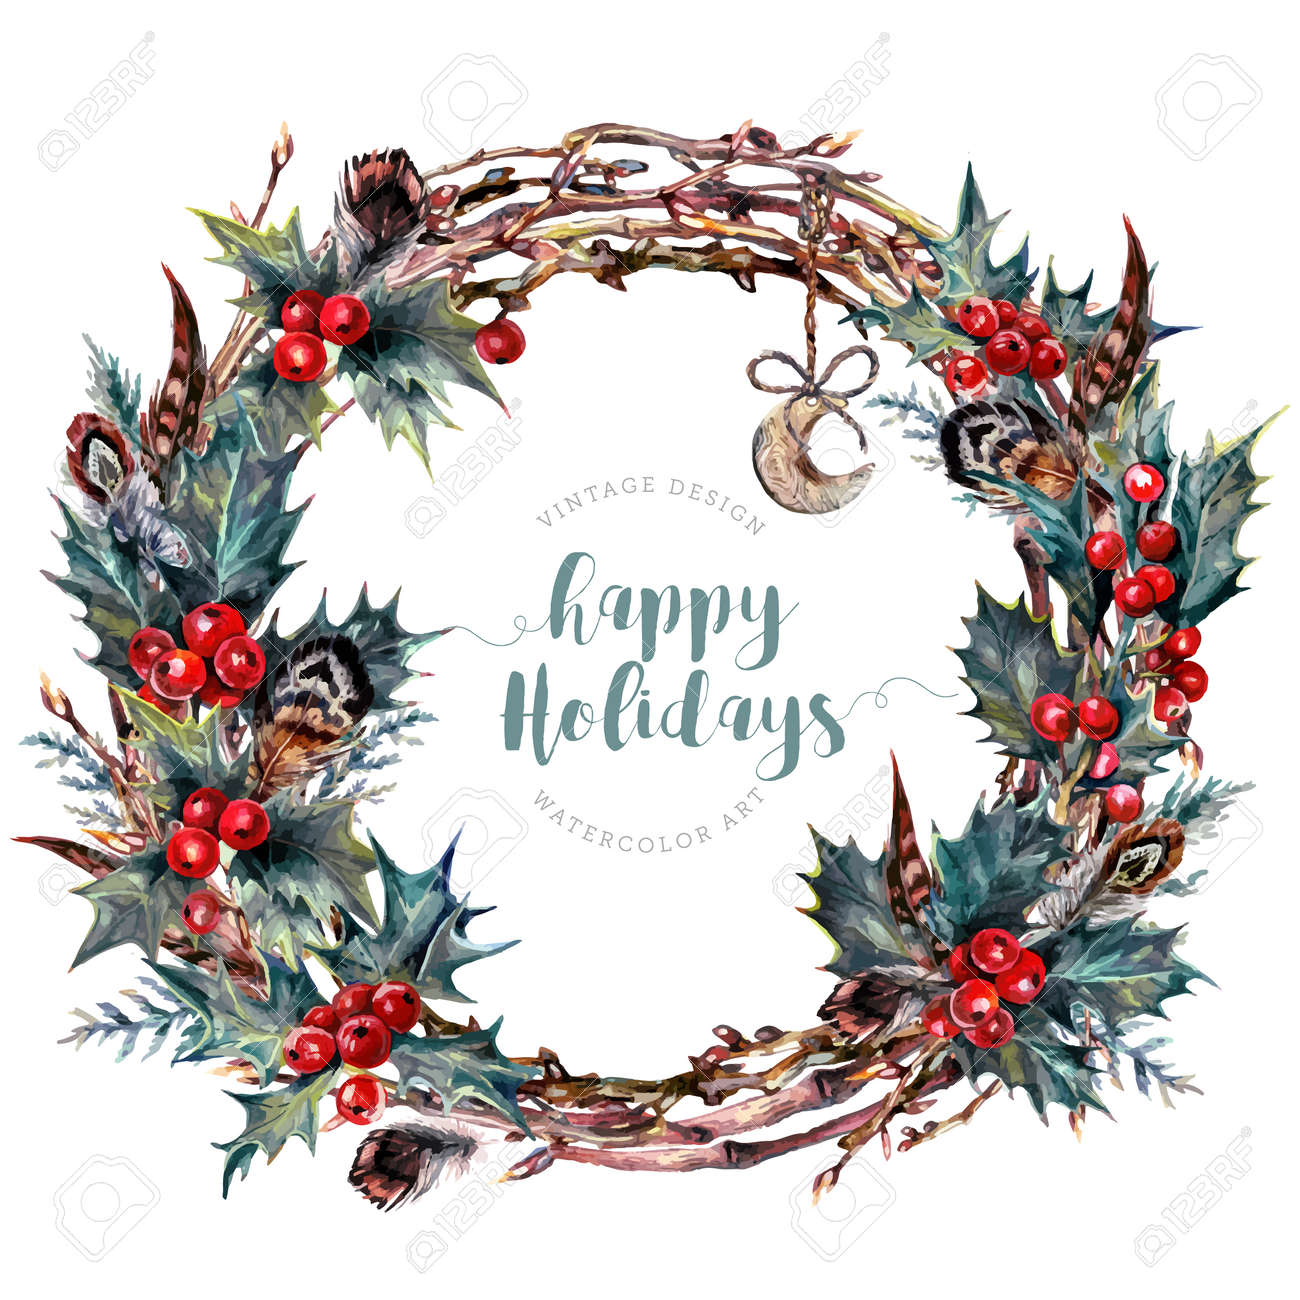 Watercolor Boho Christmas Wreath Made Of Dry Twigs Red Holly Royalty Free Cliparts Vectors And Stock Illustration Image 74140766